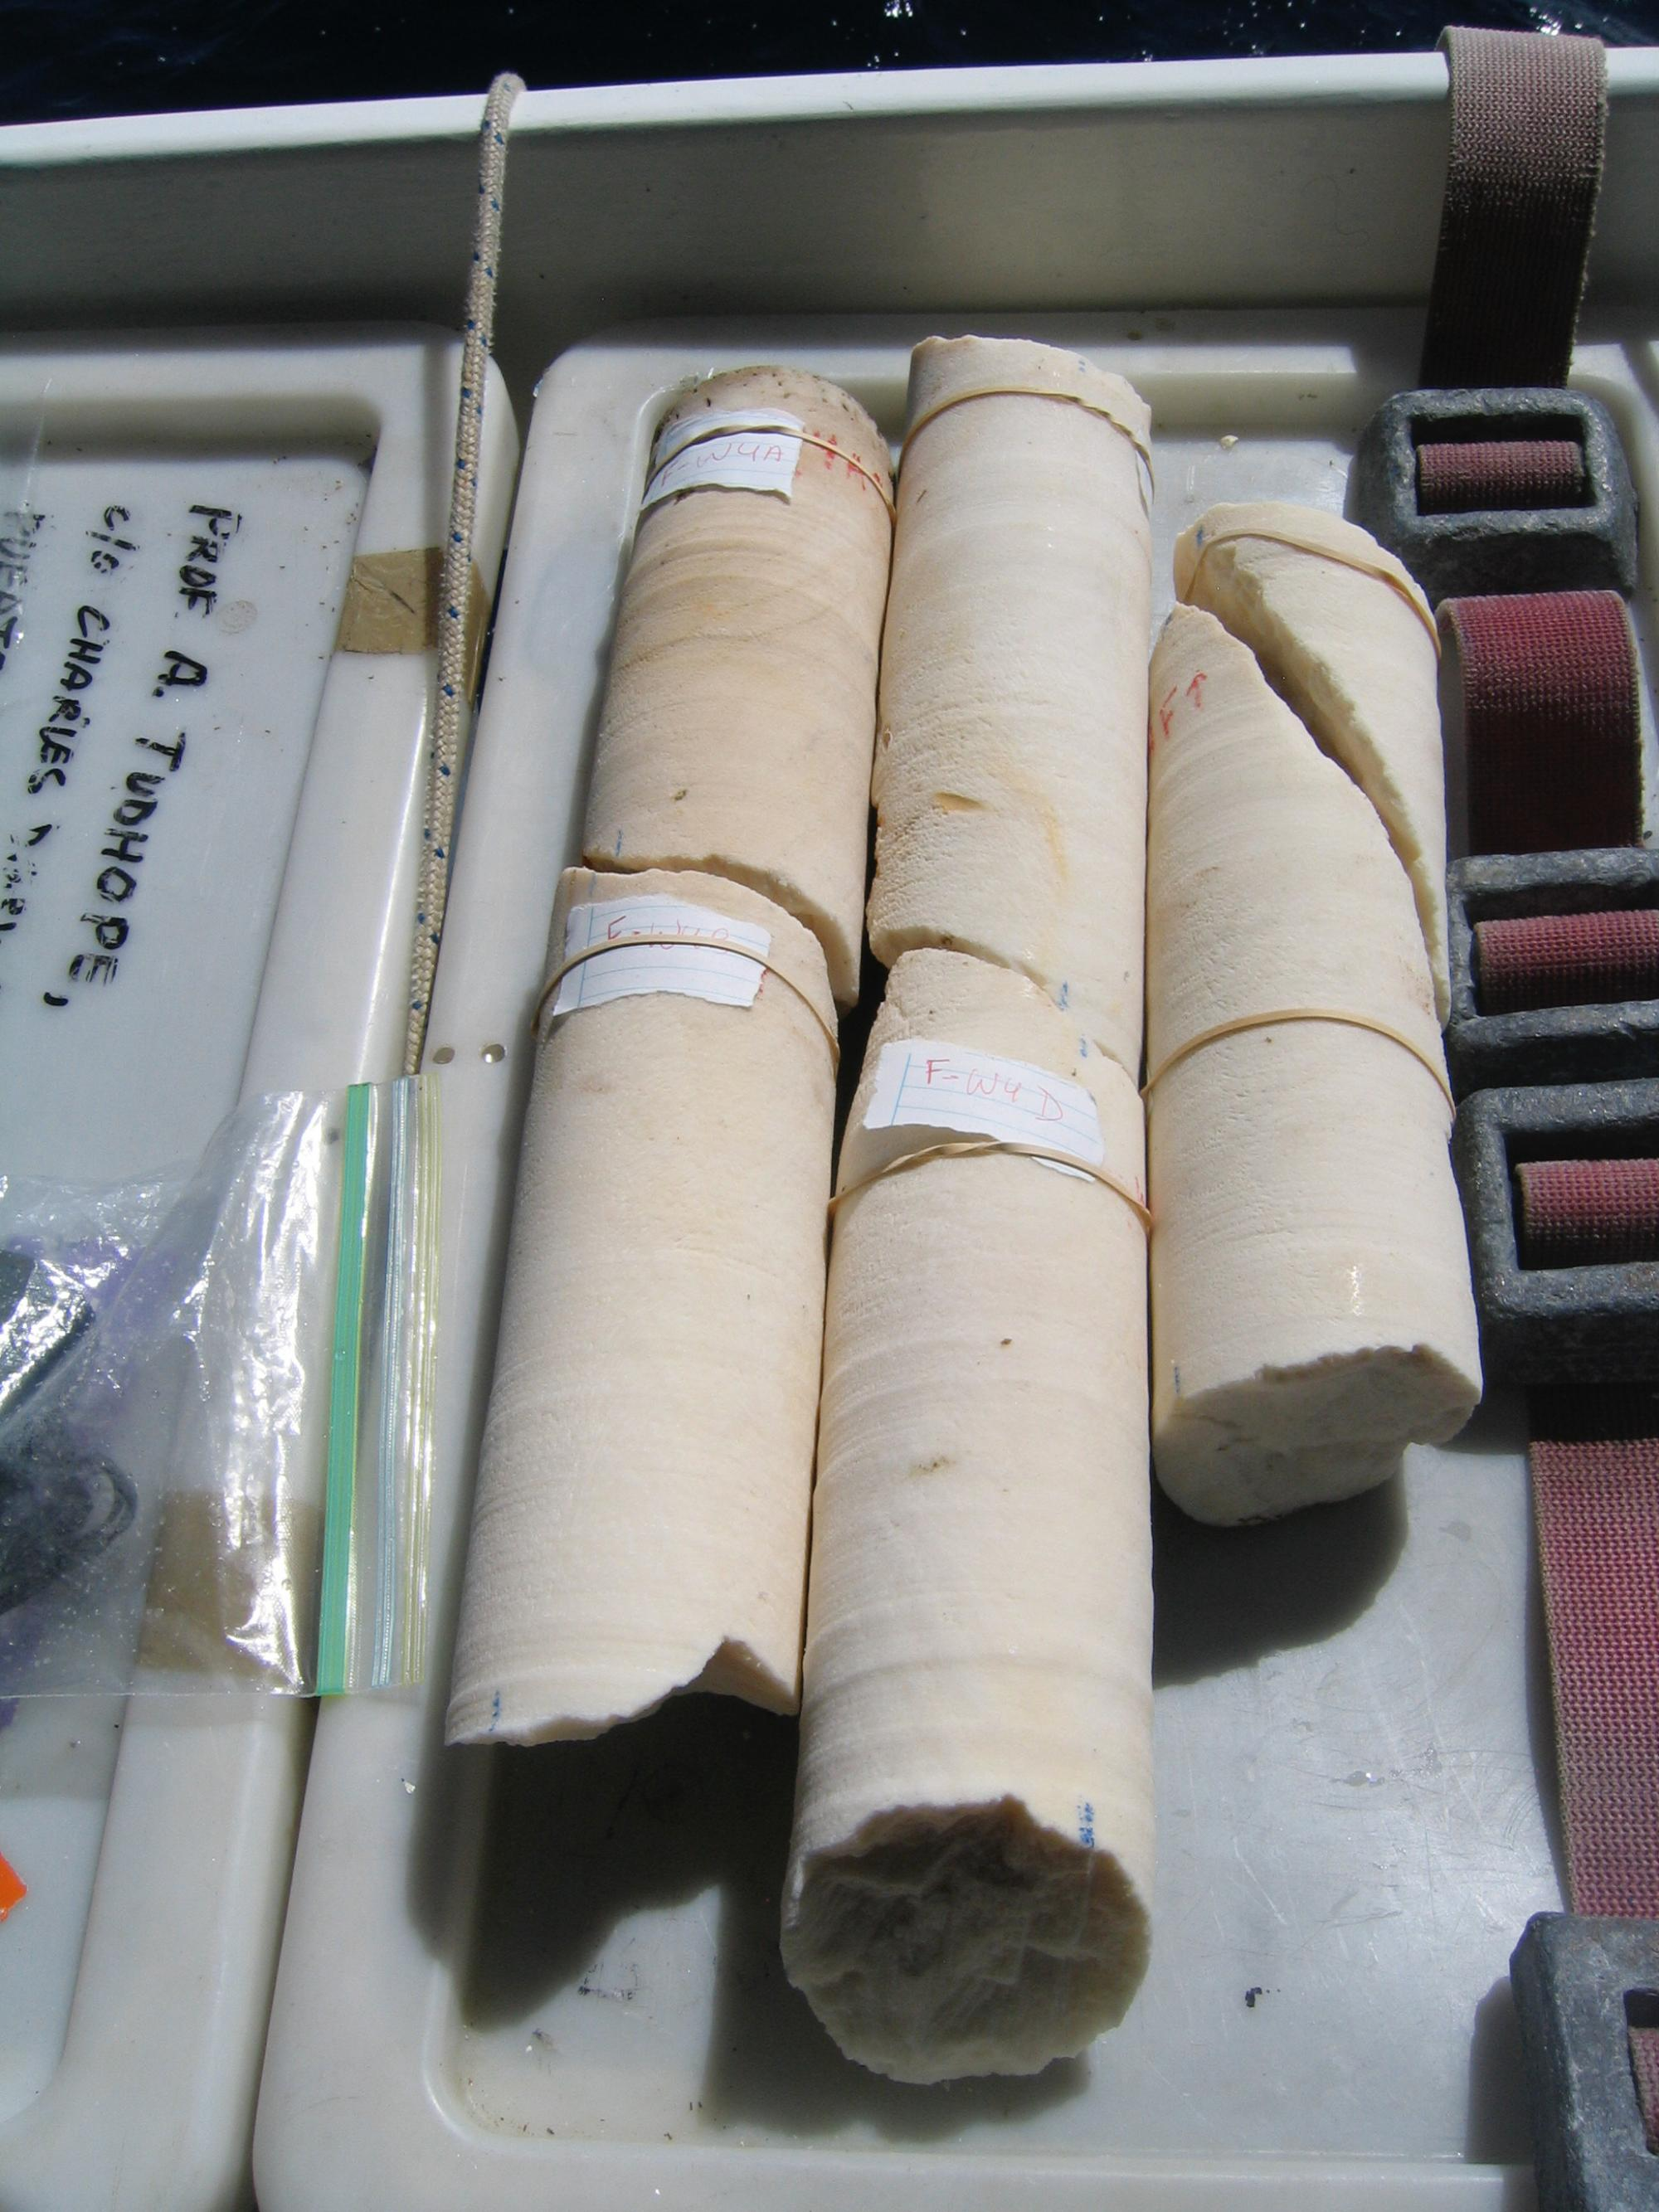 Cores collected in 2010 from a Porites lobate coral near Wolf Island in the Galápagos Islands. The core, now broken into three pieces, is 3.5 inches  in diameter.